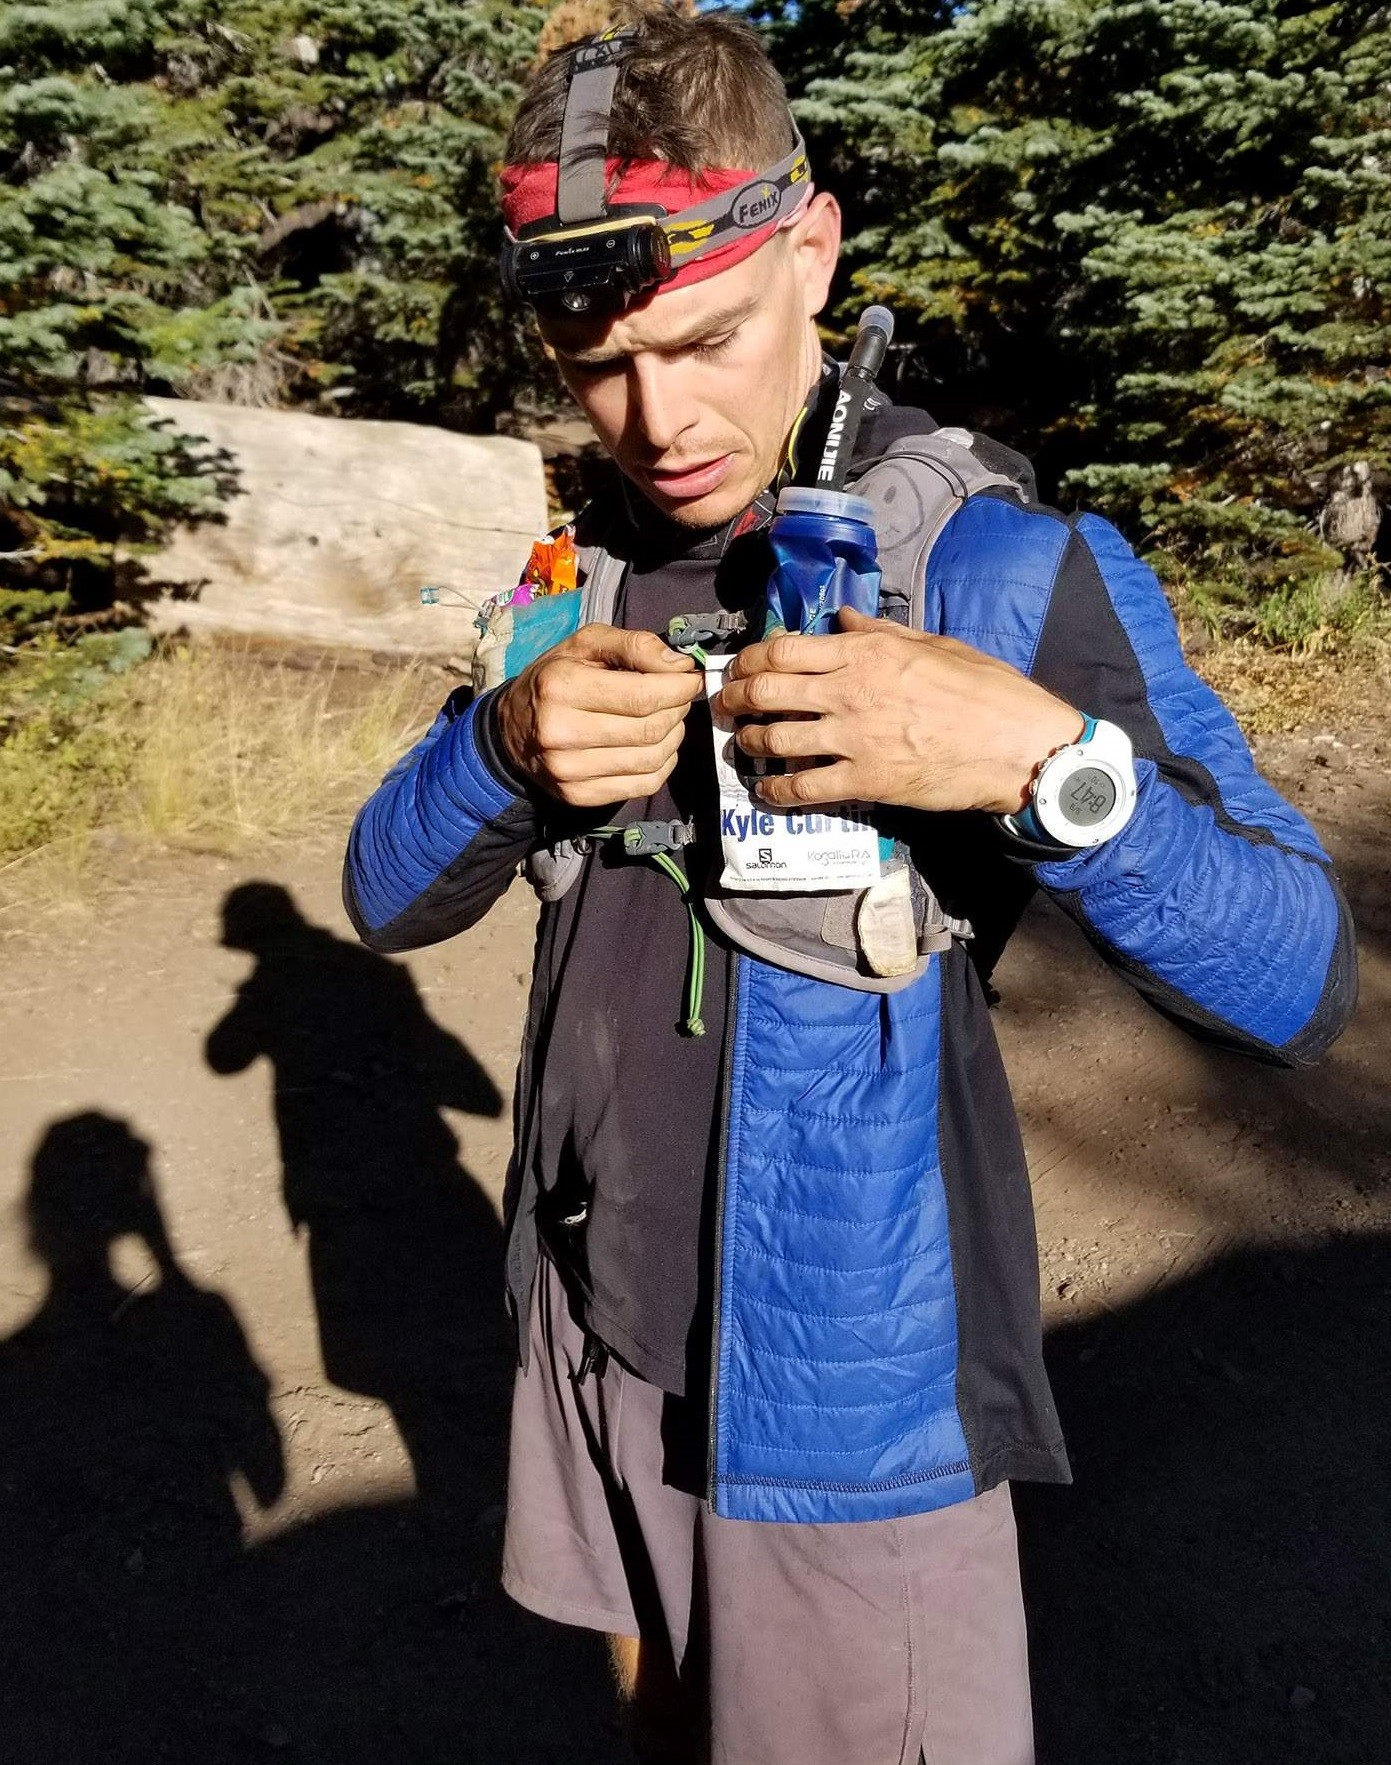 Ultra runner Kyle Curtin smashes Tahoe 200 Endurance Run record